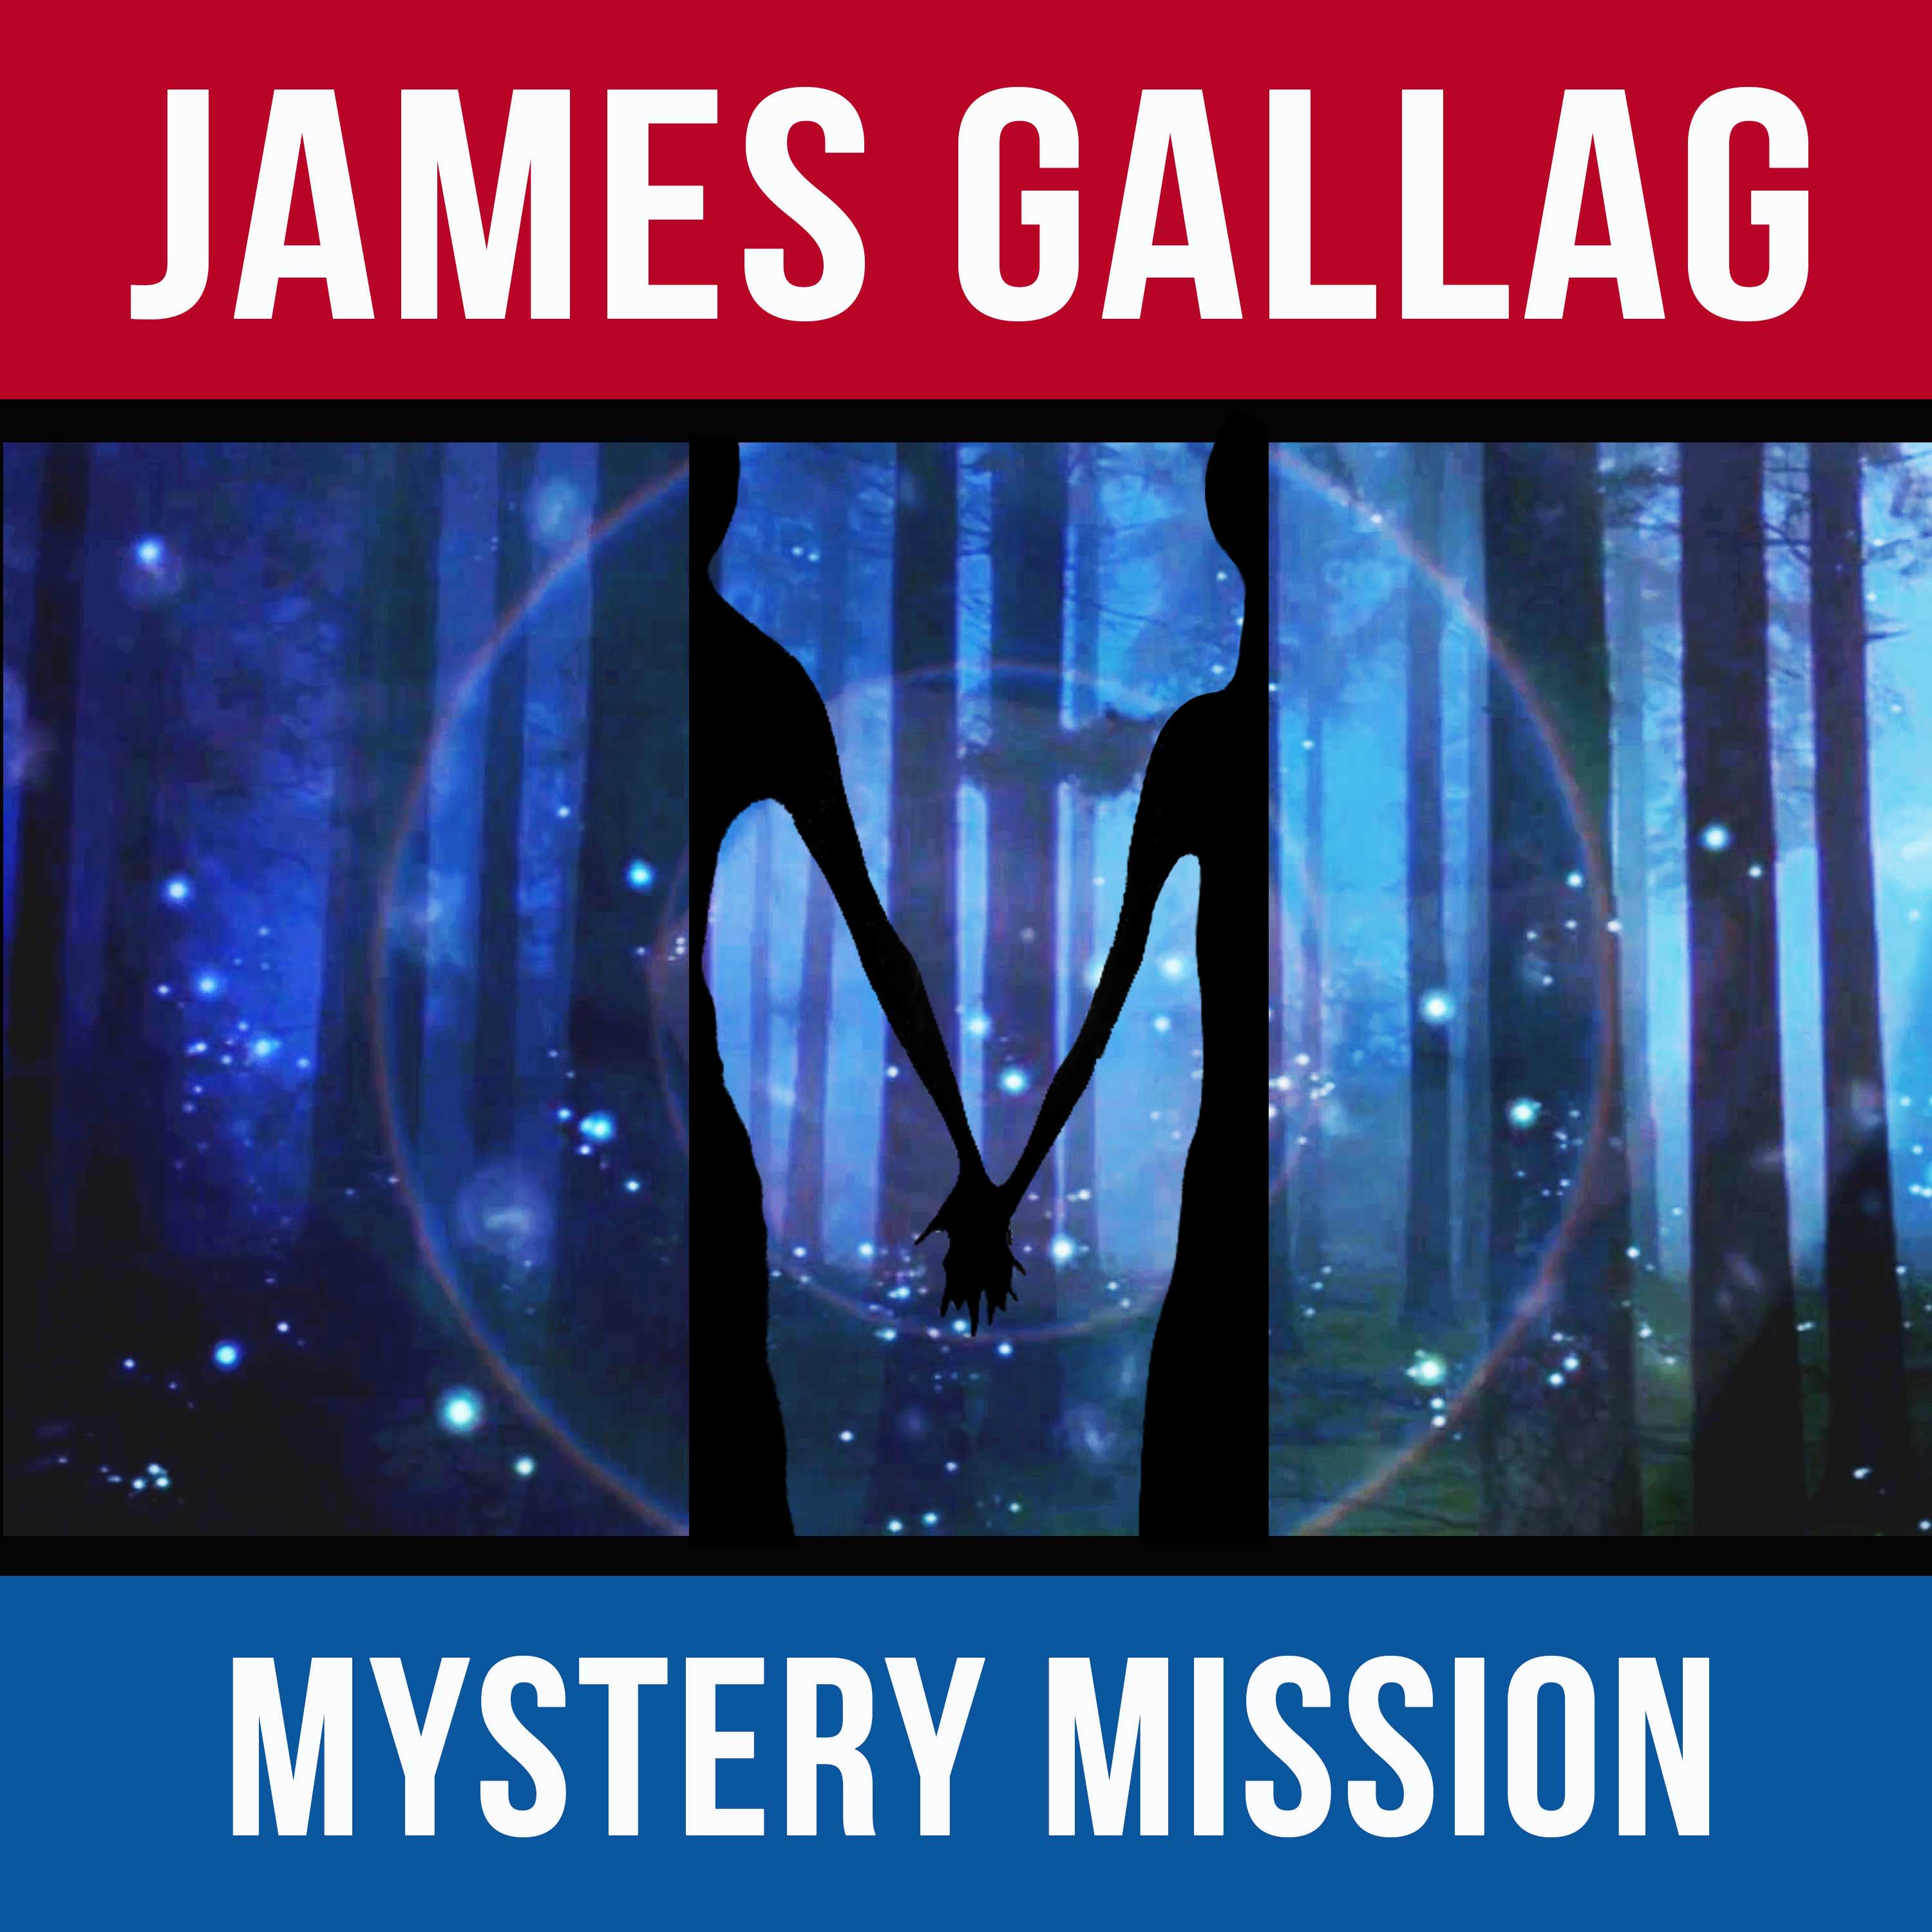 james gallag mystery mission